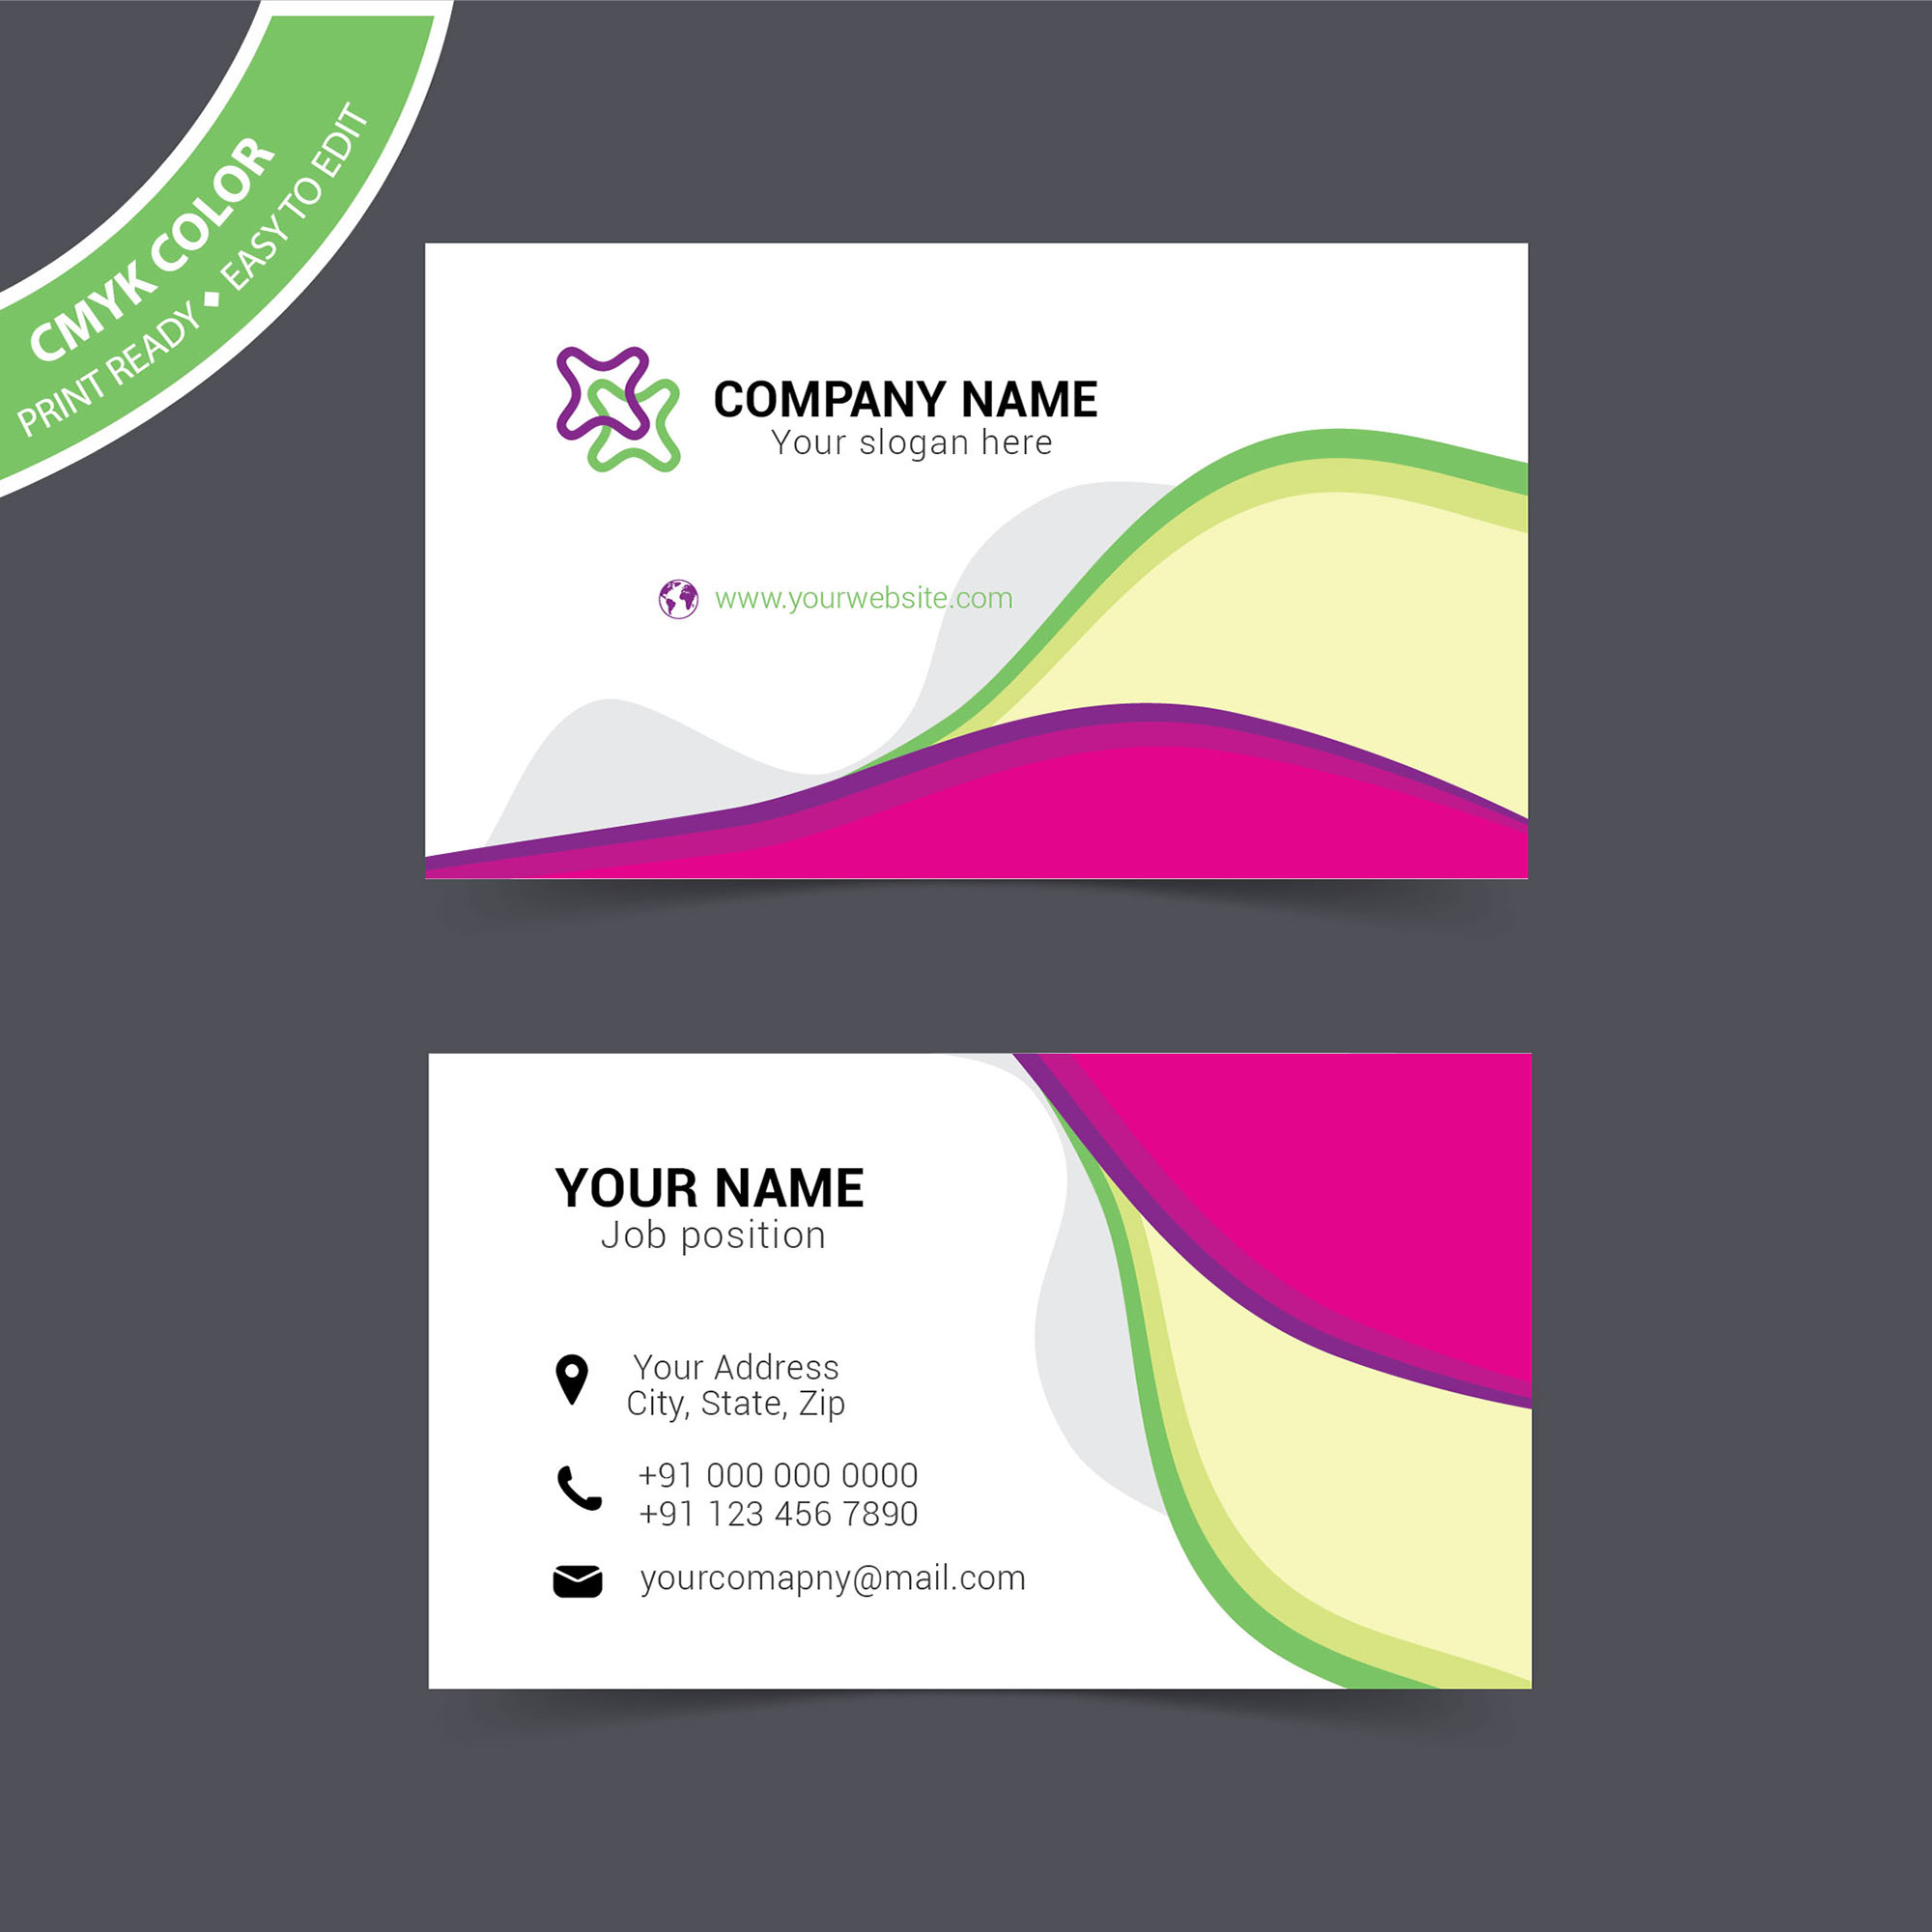 Visiting Card Design Sample Free Download Wisxicom - Free business card layout template